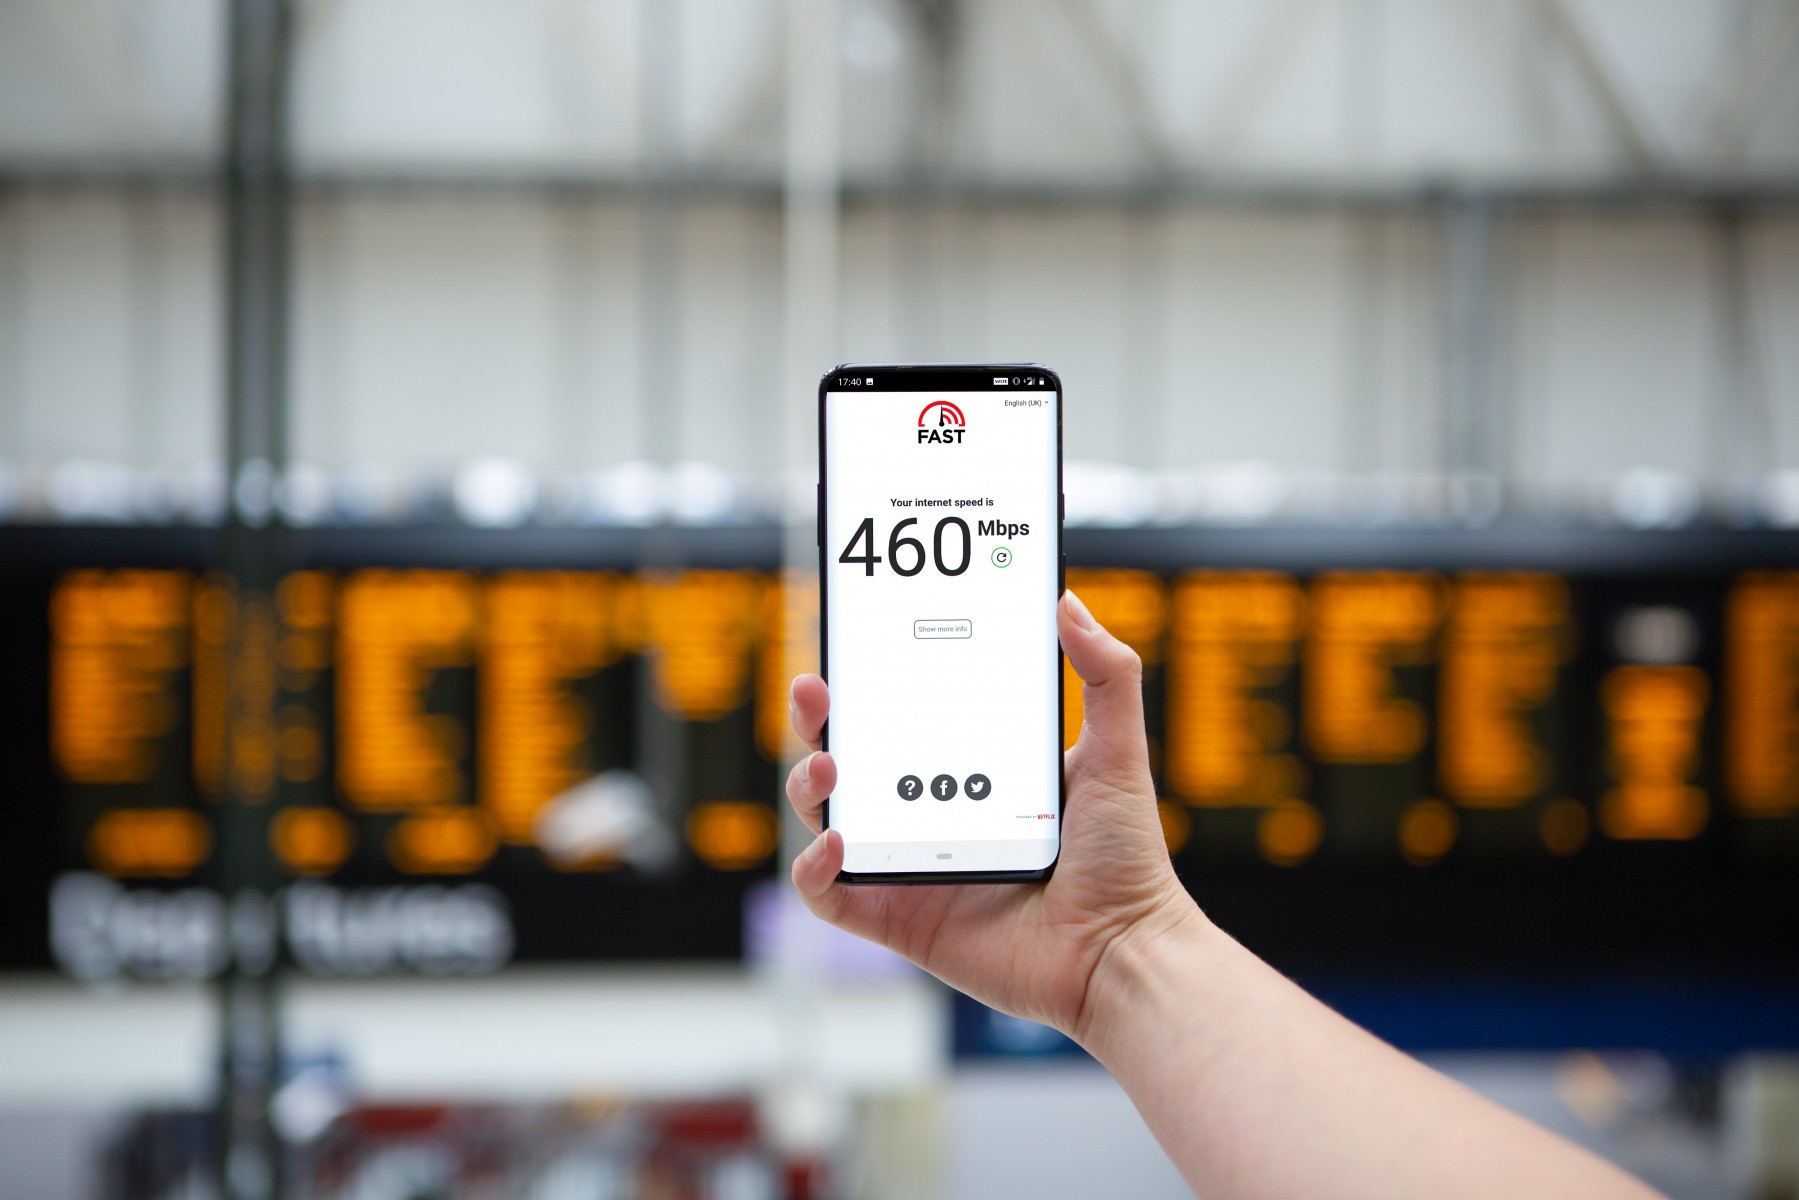 EE 5G speed test in train station